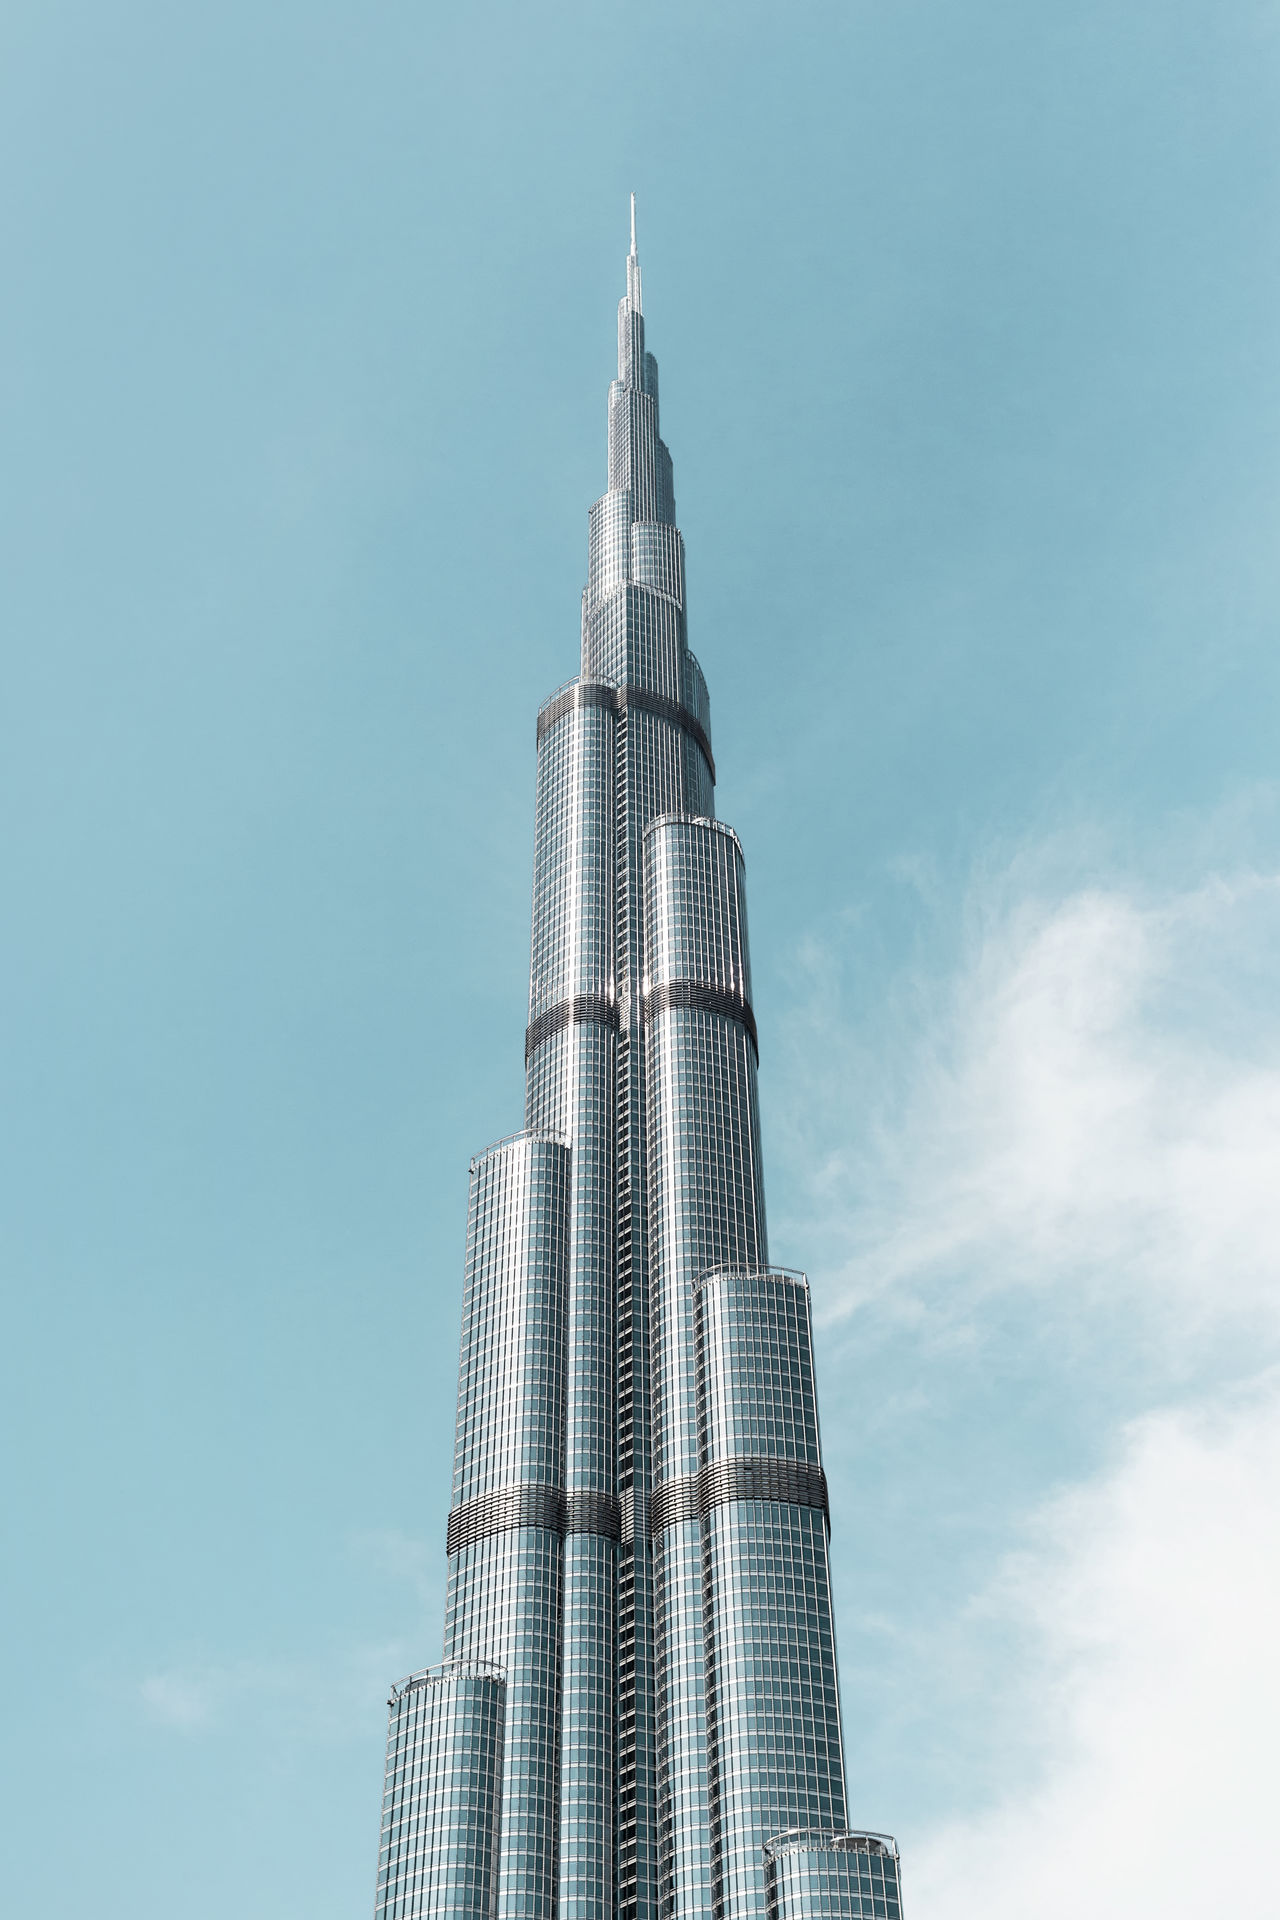 Architecture Architecture_collection BIG Blue Sky Burj Khalifa Clear Sky Day Huge Low Angle View Modern No People Outdoors Sky Tourism Tourism Destination Tourist Attraction  Tower Travel